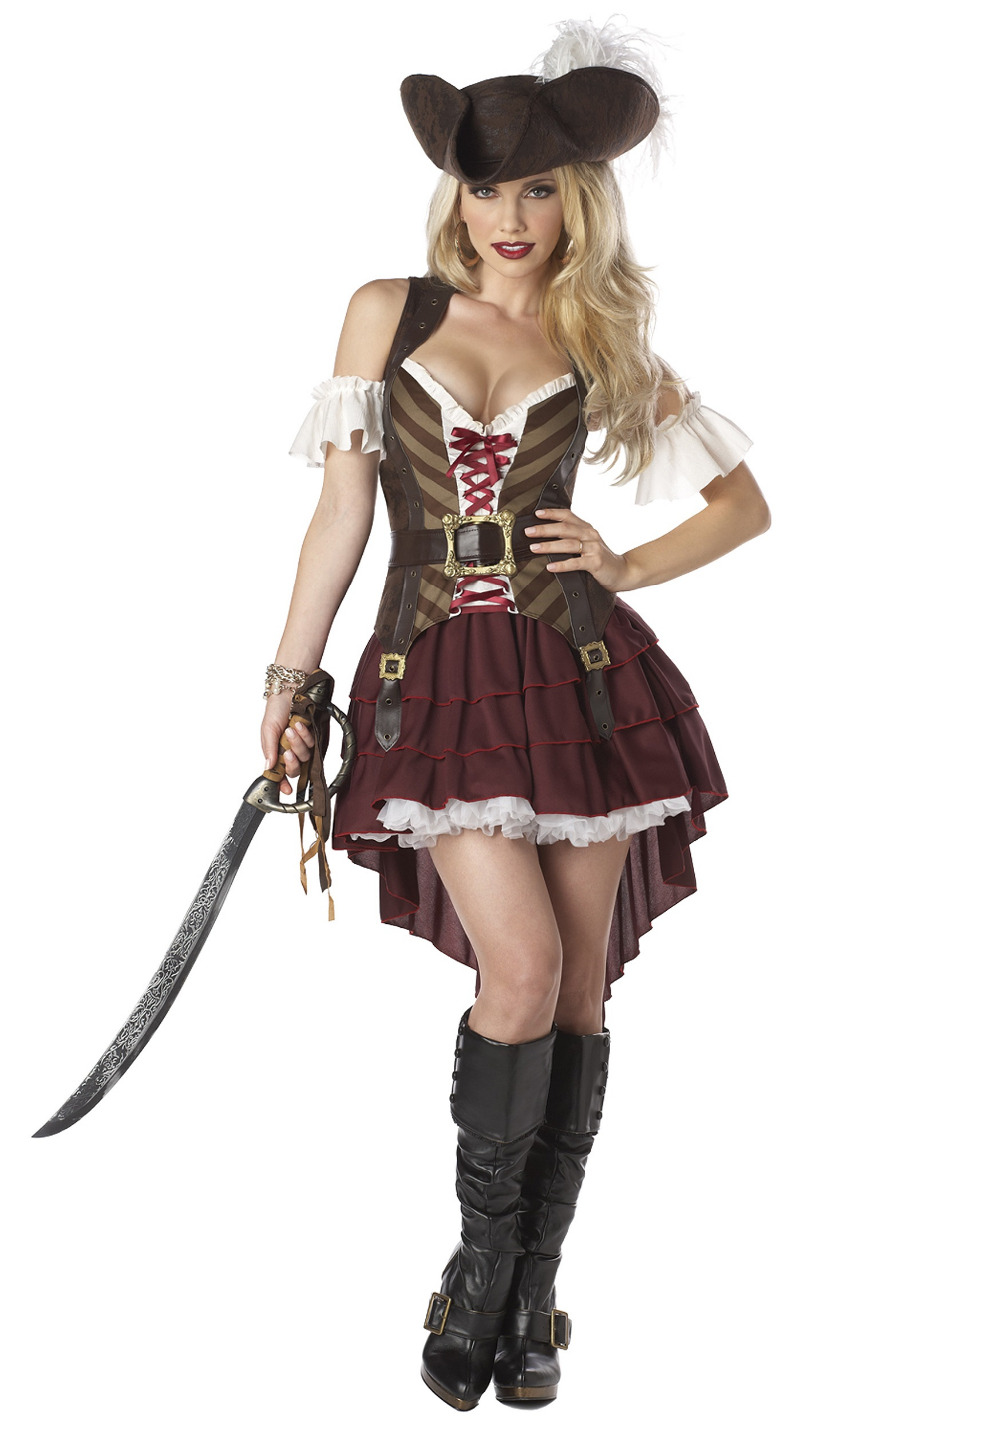 2017 High Quality Deluxe Female Pirate Costome Halloween Women Caribbean Pirates Fancy Dress